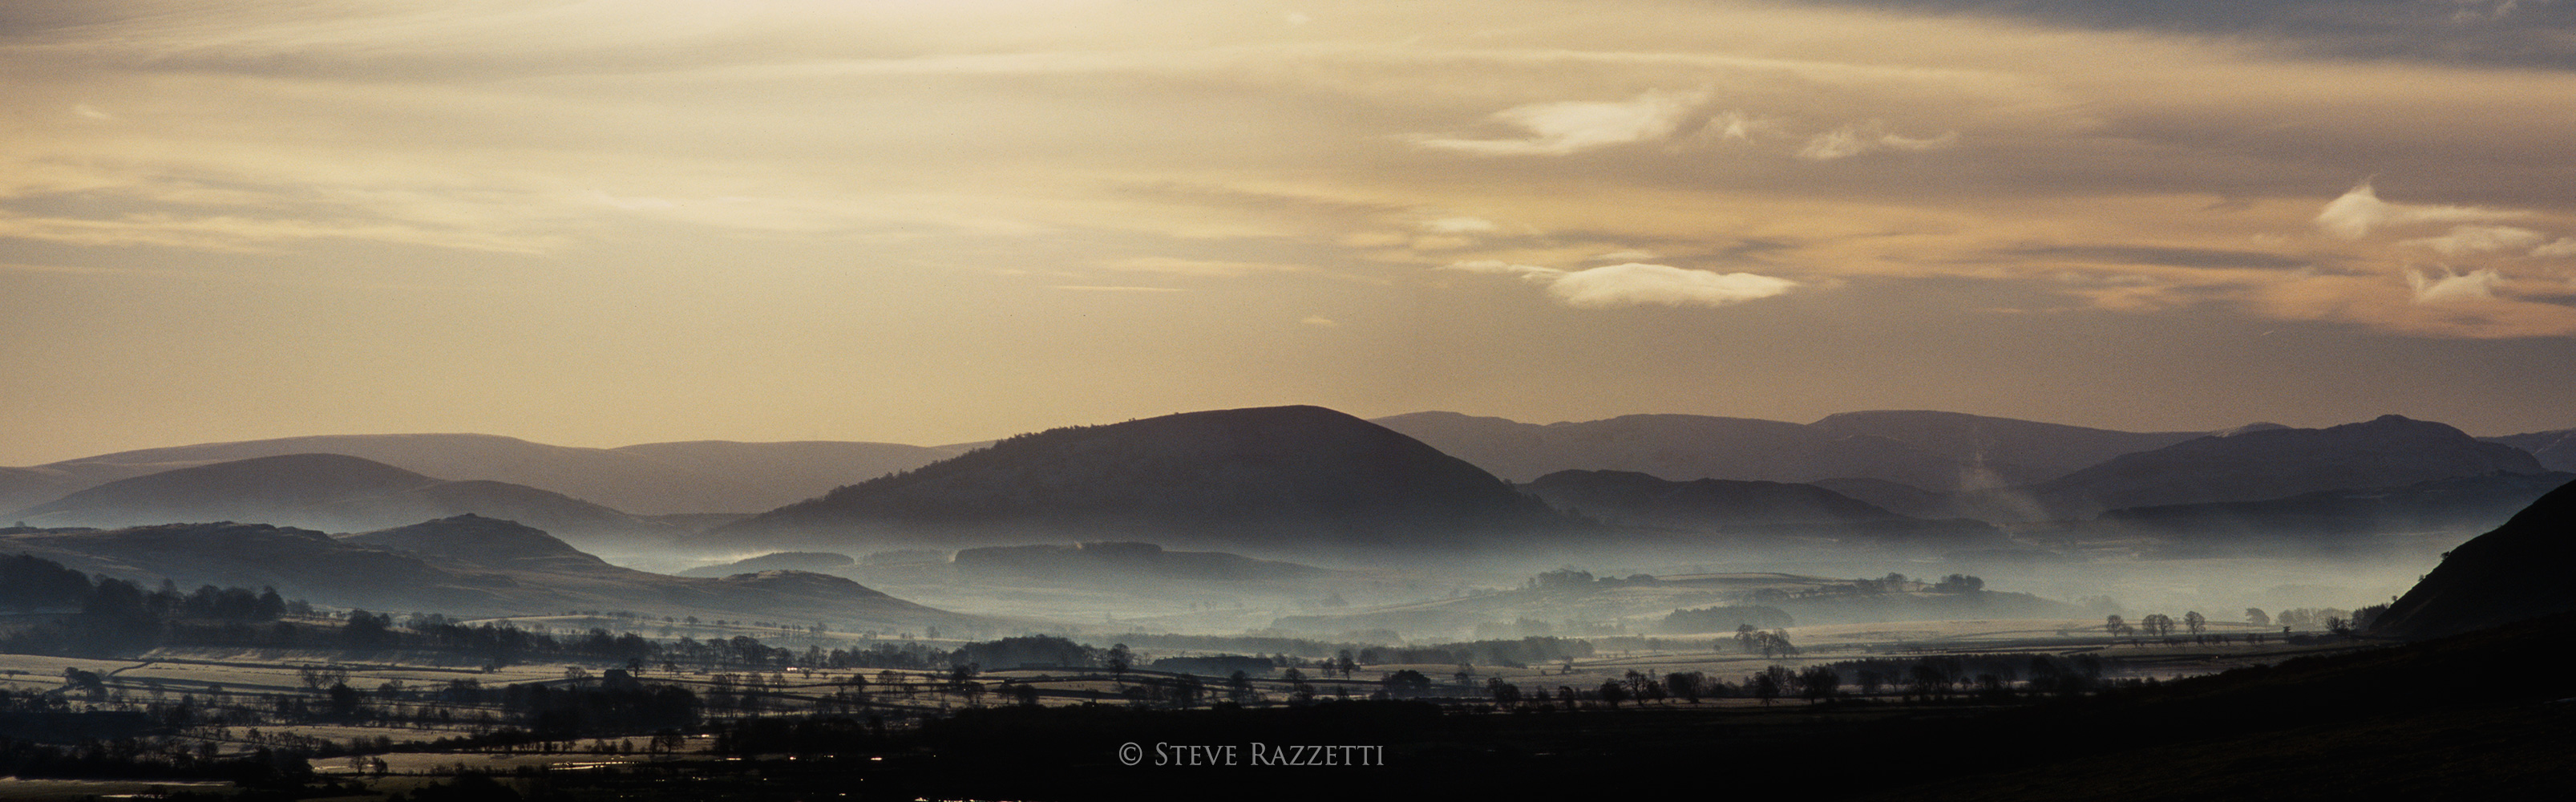 As the winter sun slowly climbs in the sky, the mists in the valley bottoms disperse. This is the view down valley from Calebreck.Nikon D610, 180mm. A stitch of two images.